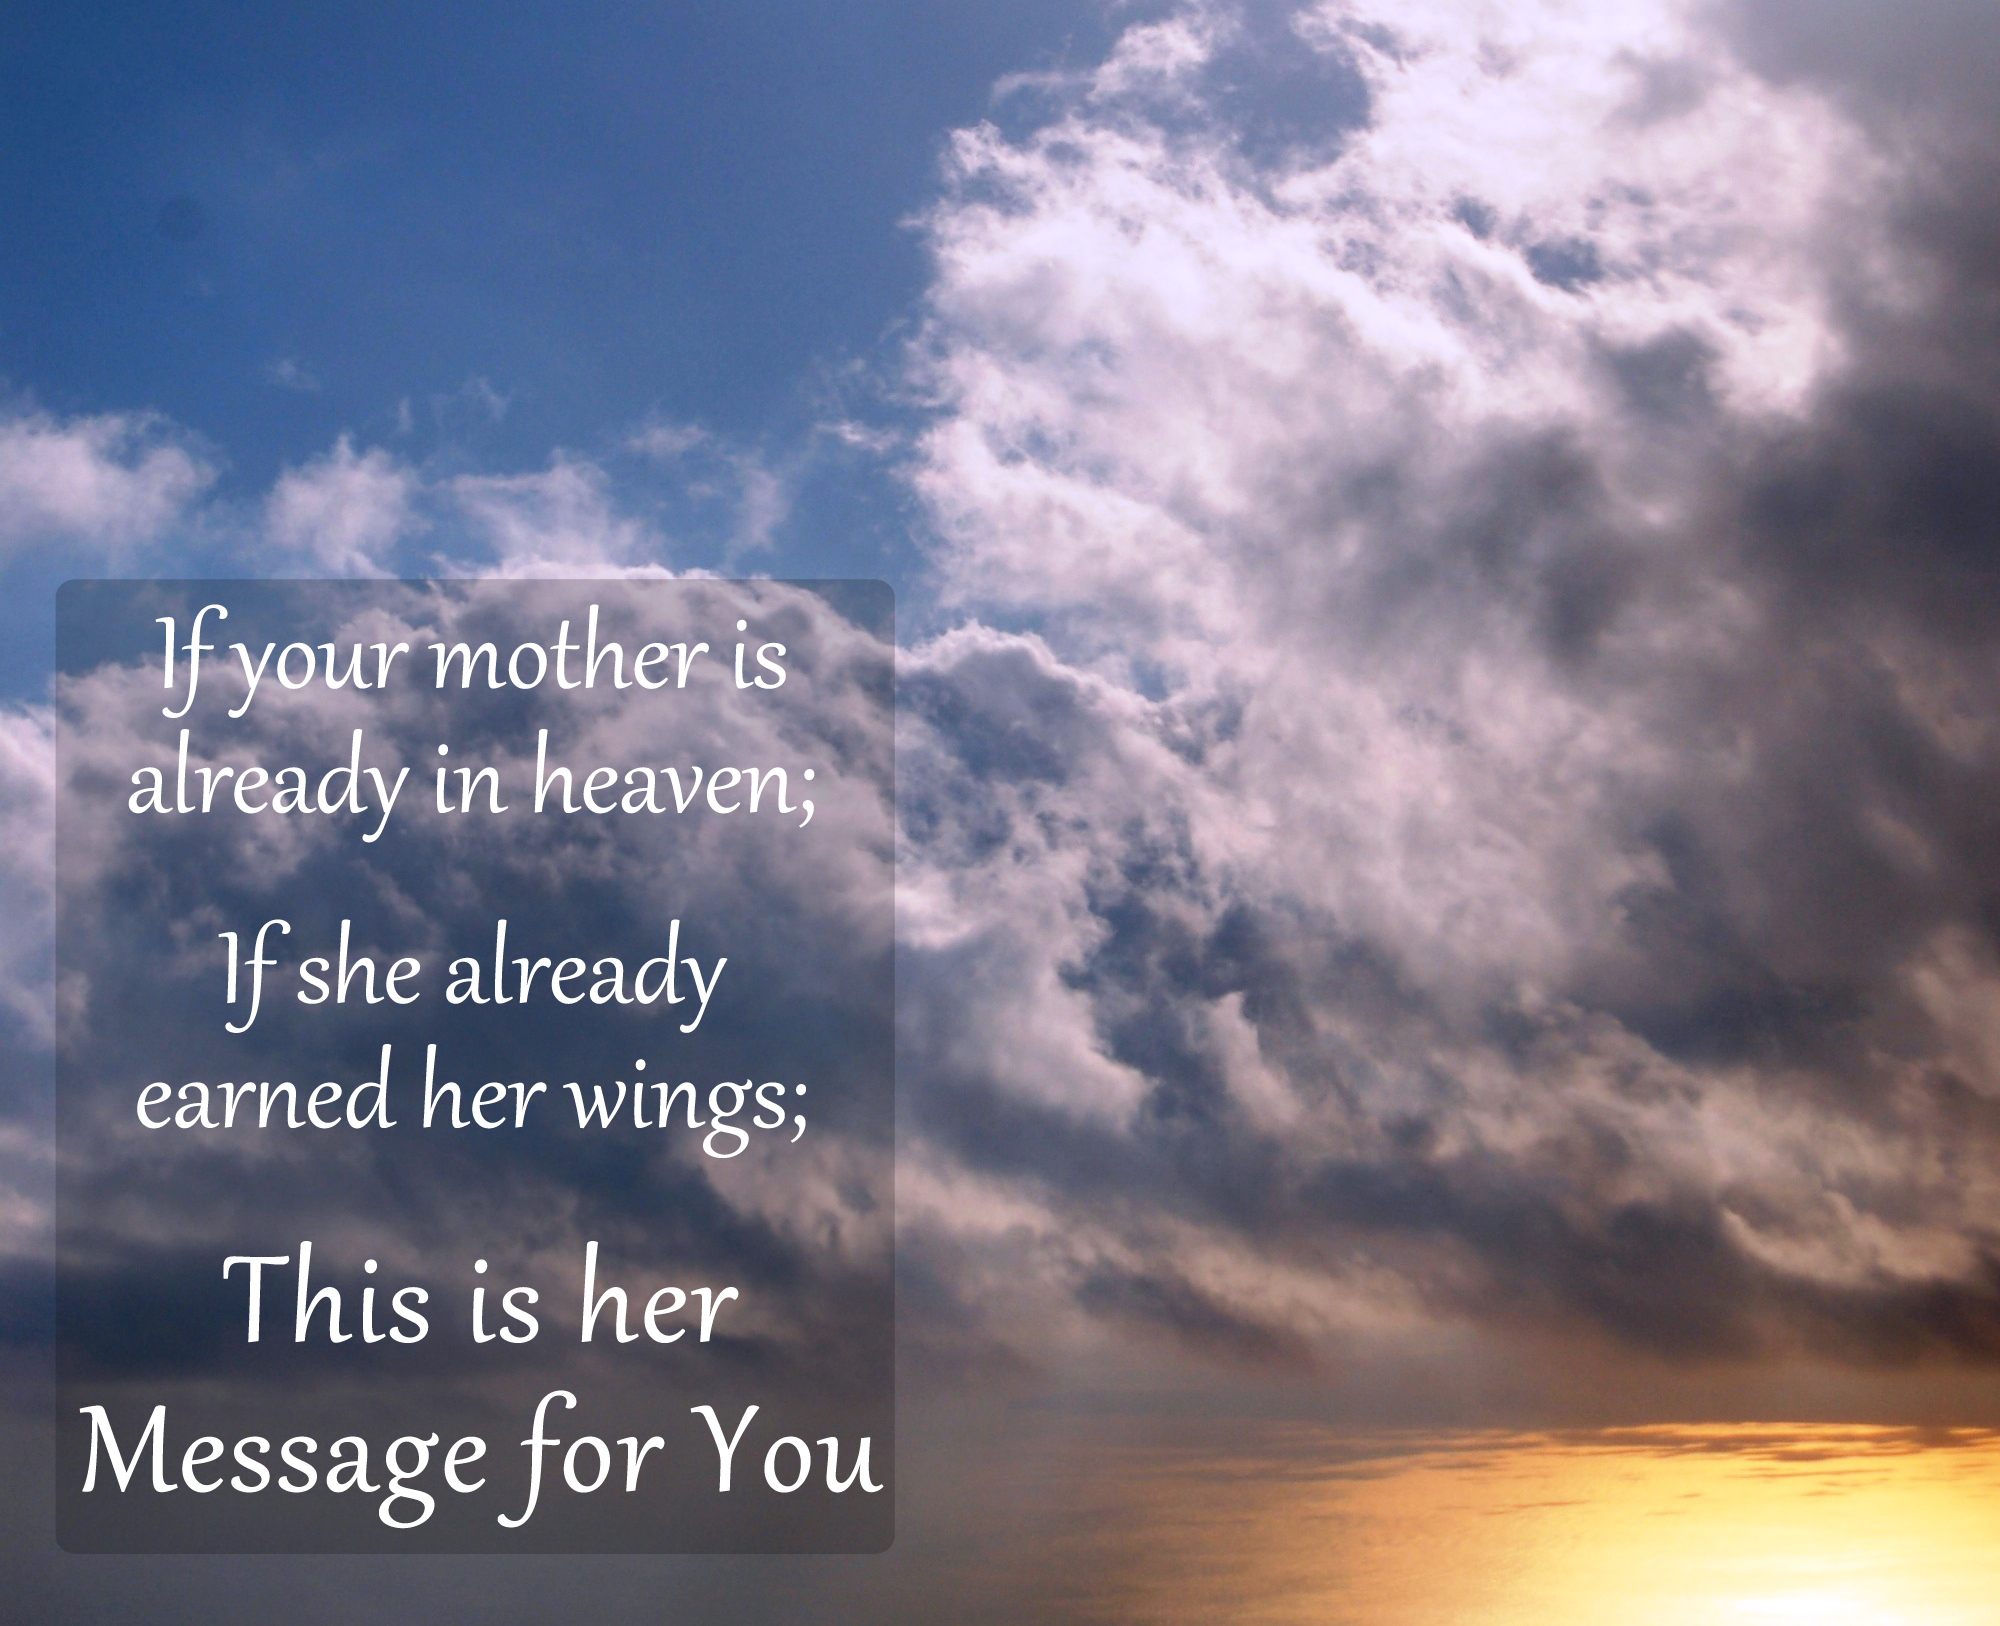 Missing My Mom In Heaven Quotes New John Msimmons Your Mother's Day Message From Your Angel Mom In